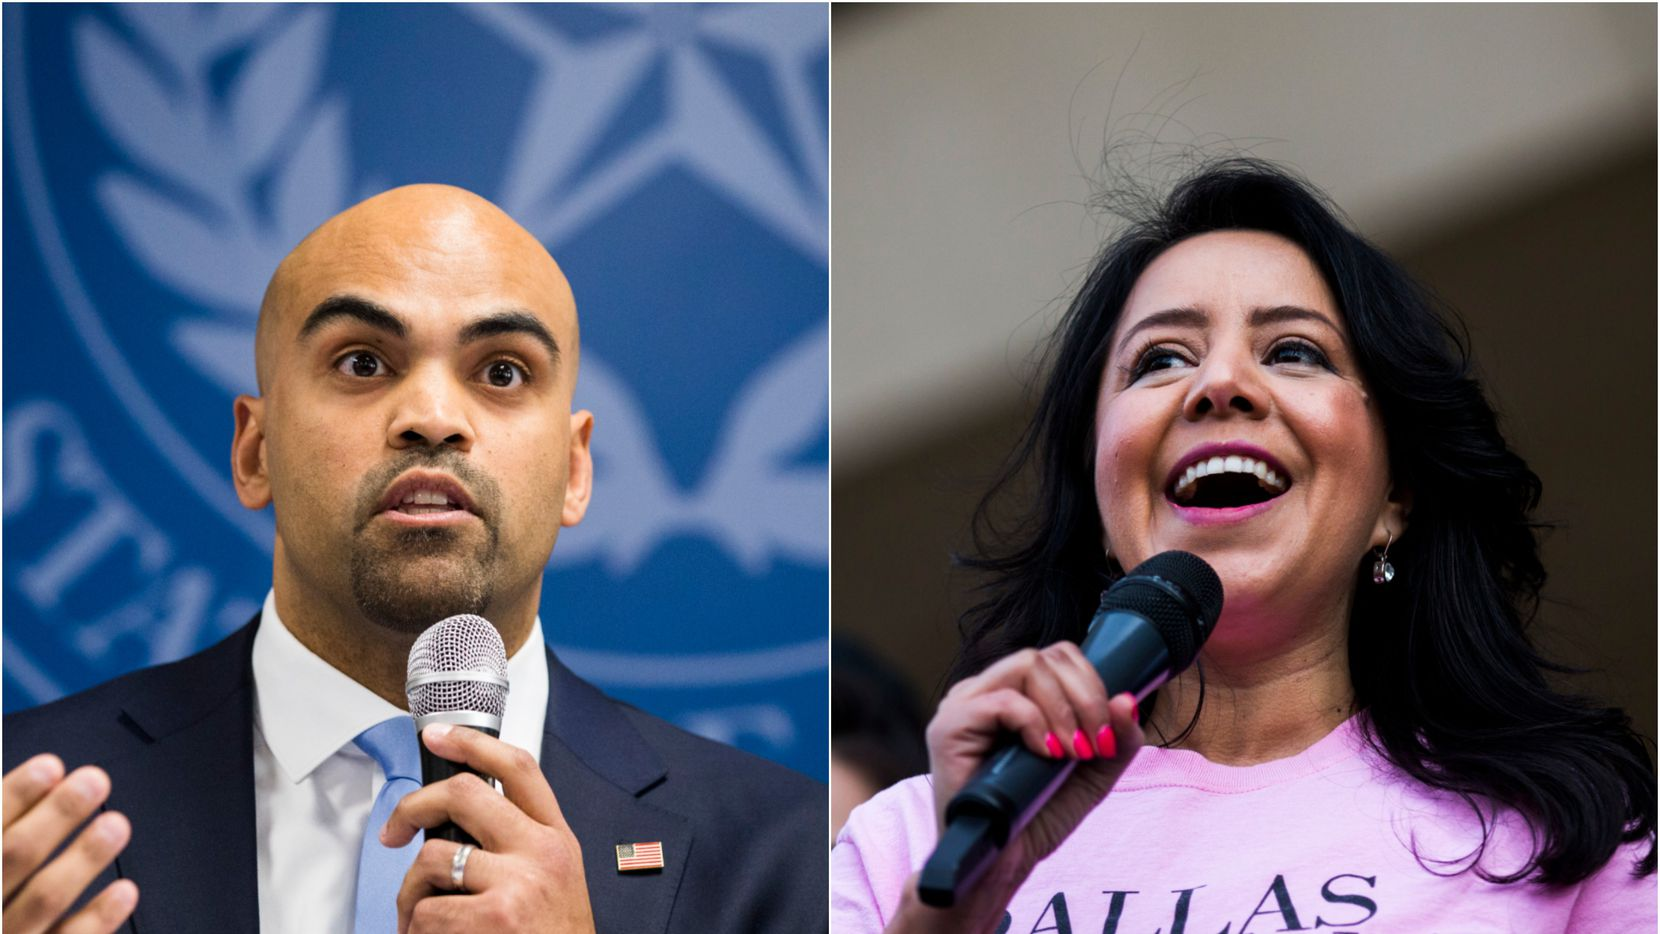 State Rep. Victoria Neave speaks at a rally at Dallas City Hall after the Dallas Women's March on Jan. 20, 2019. At left, U.S. Rep. Colin Allred speaks about Dallas County's response to the coronavirus outbreak on March 6, 2020 at the Dallas County Health and Human Services Building.